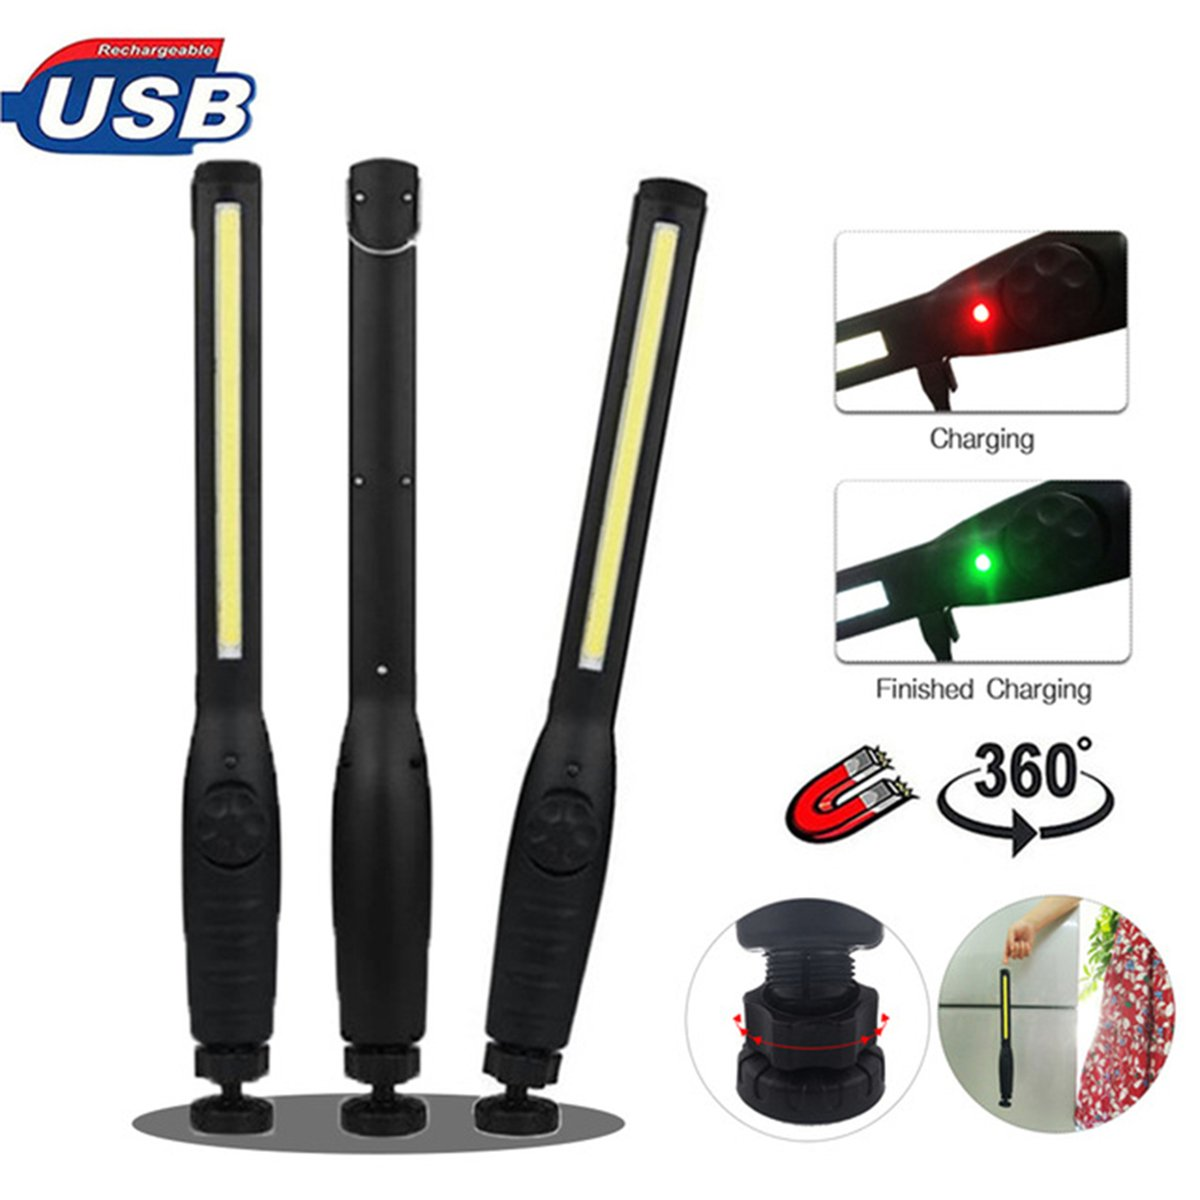 USB Rechargeable Portable COB Flashlight Torch LED Work Light Magnetic Lanterna Hook Hanging Lamp Torch for Car Repair Camping